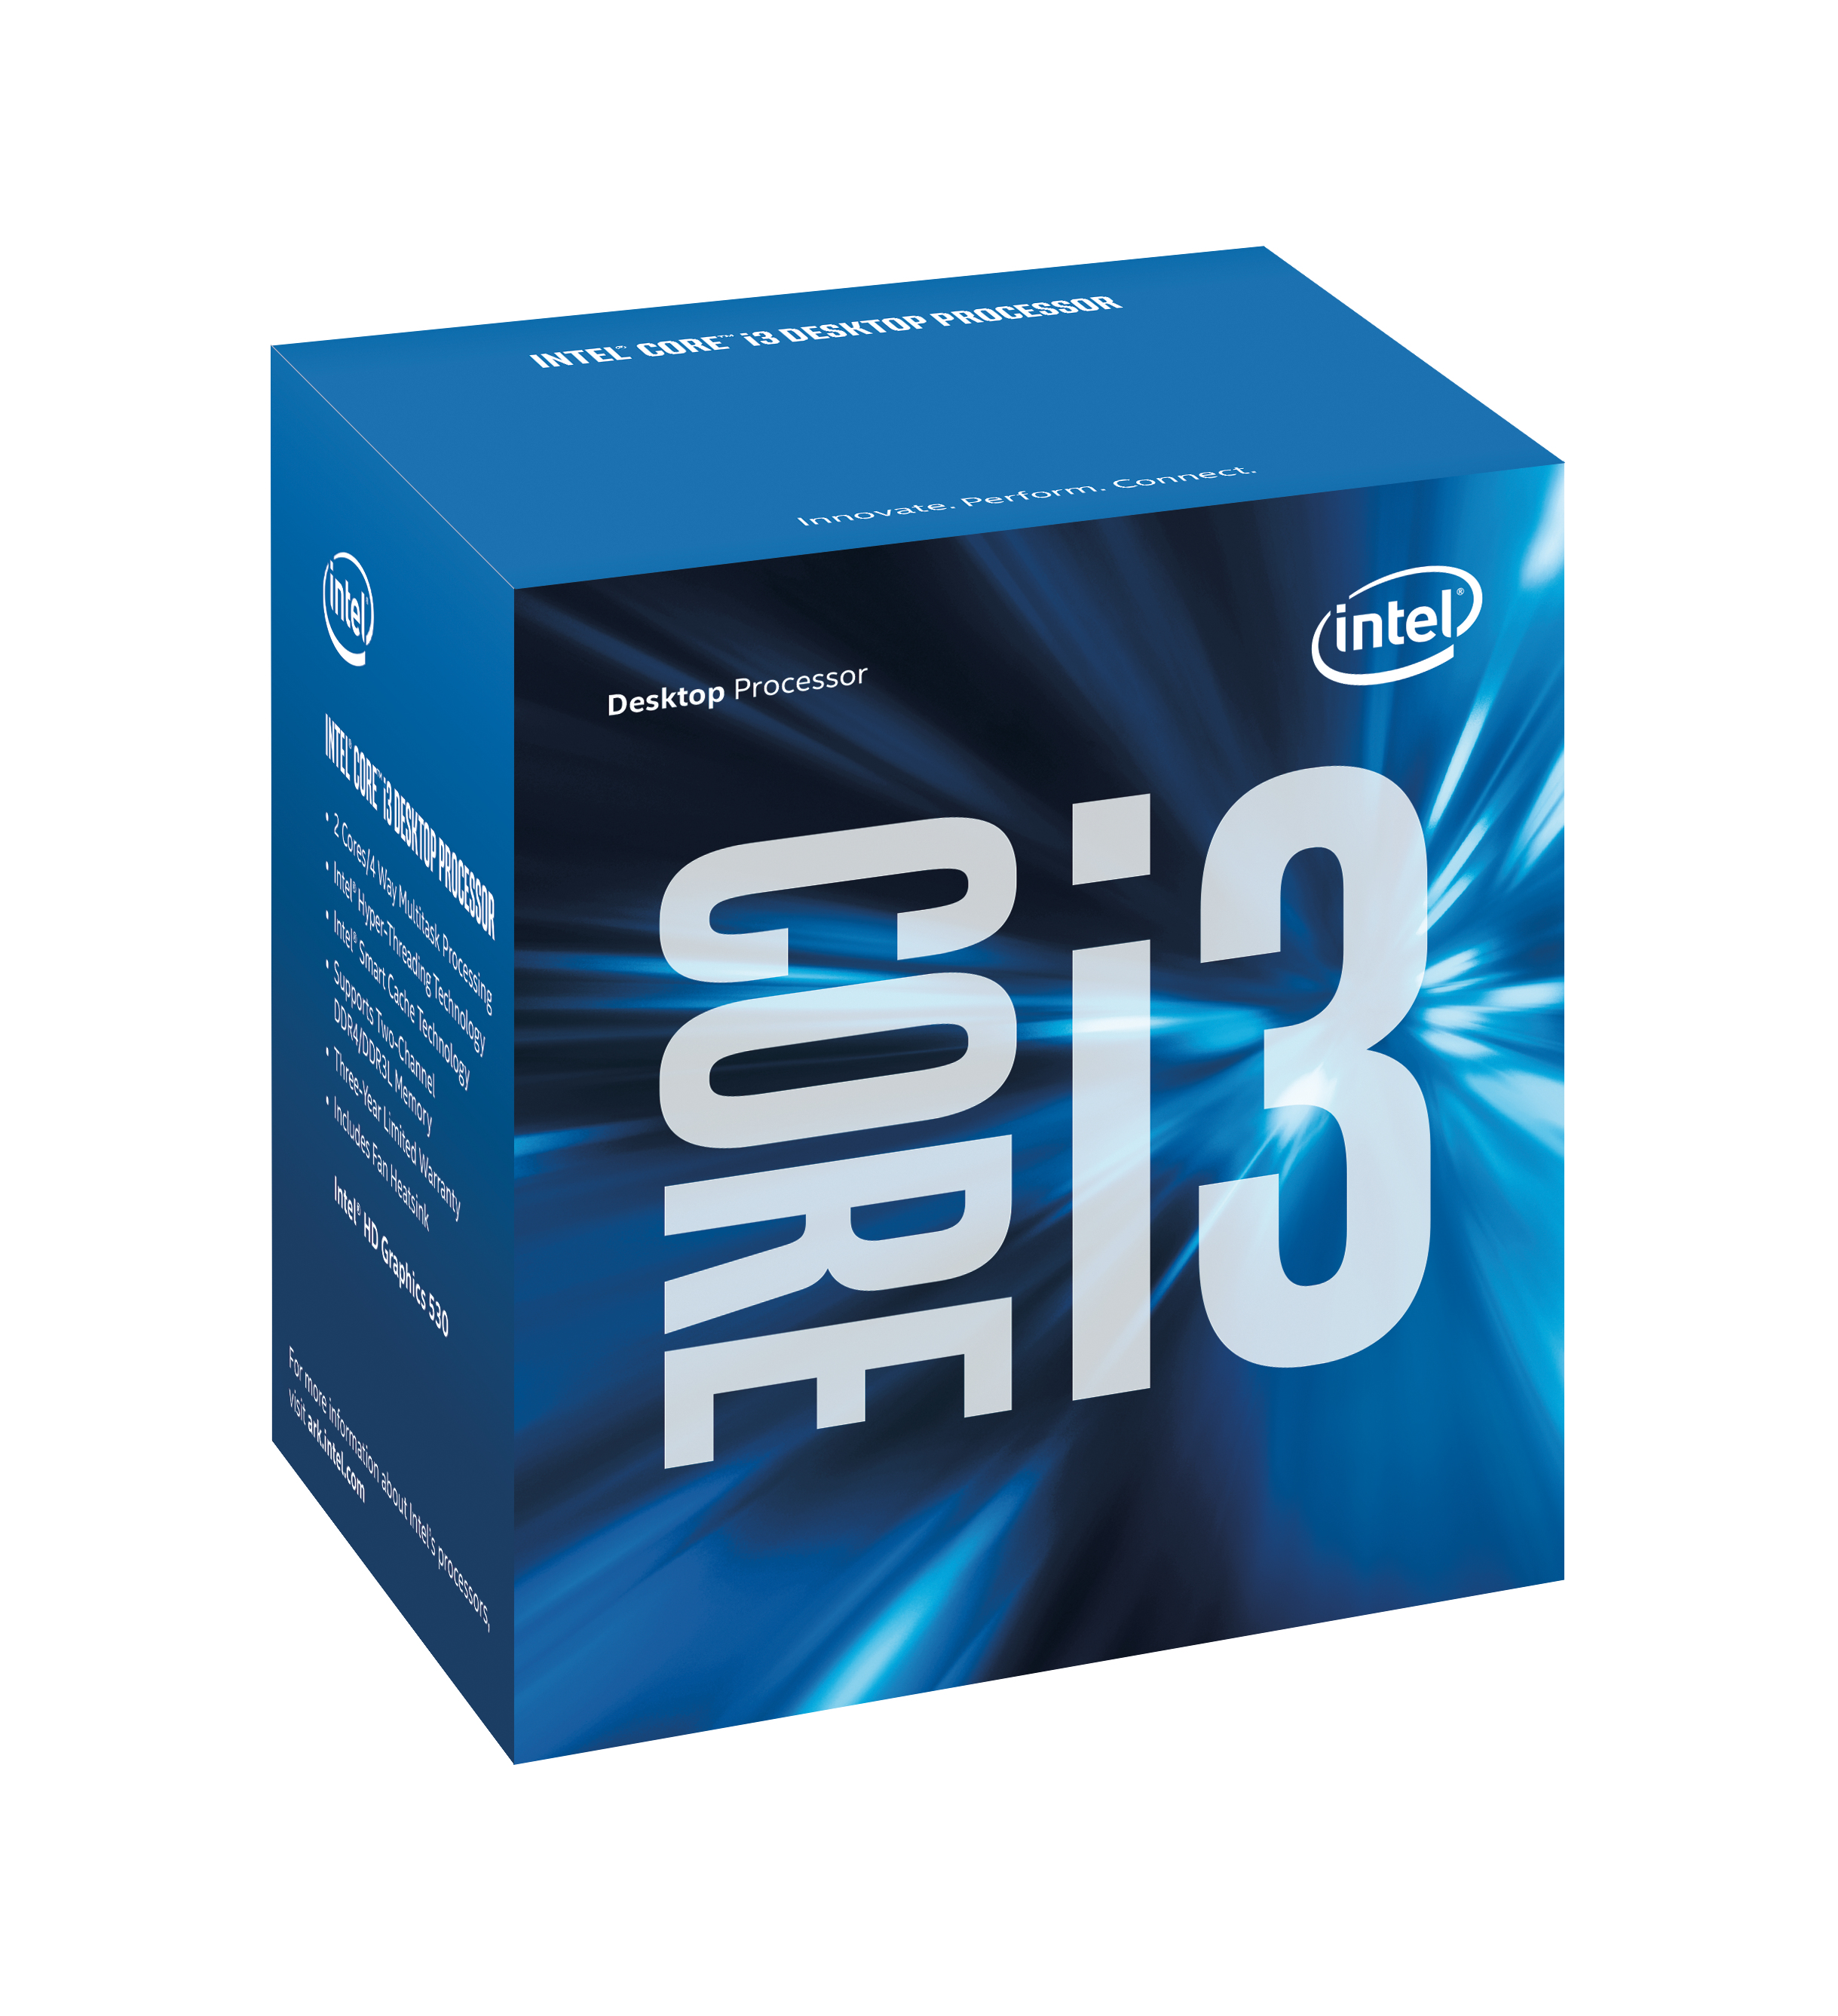 Intel Core ® ™ i3-6300 Processor (4M Cache, 3.80 GHz) 3.8GHz 4MB Smart Cache Box processor